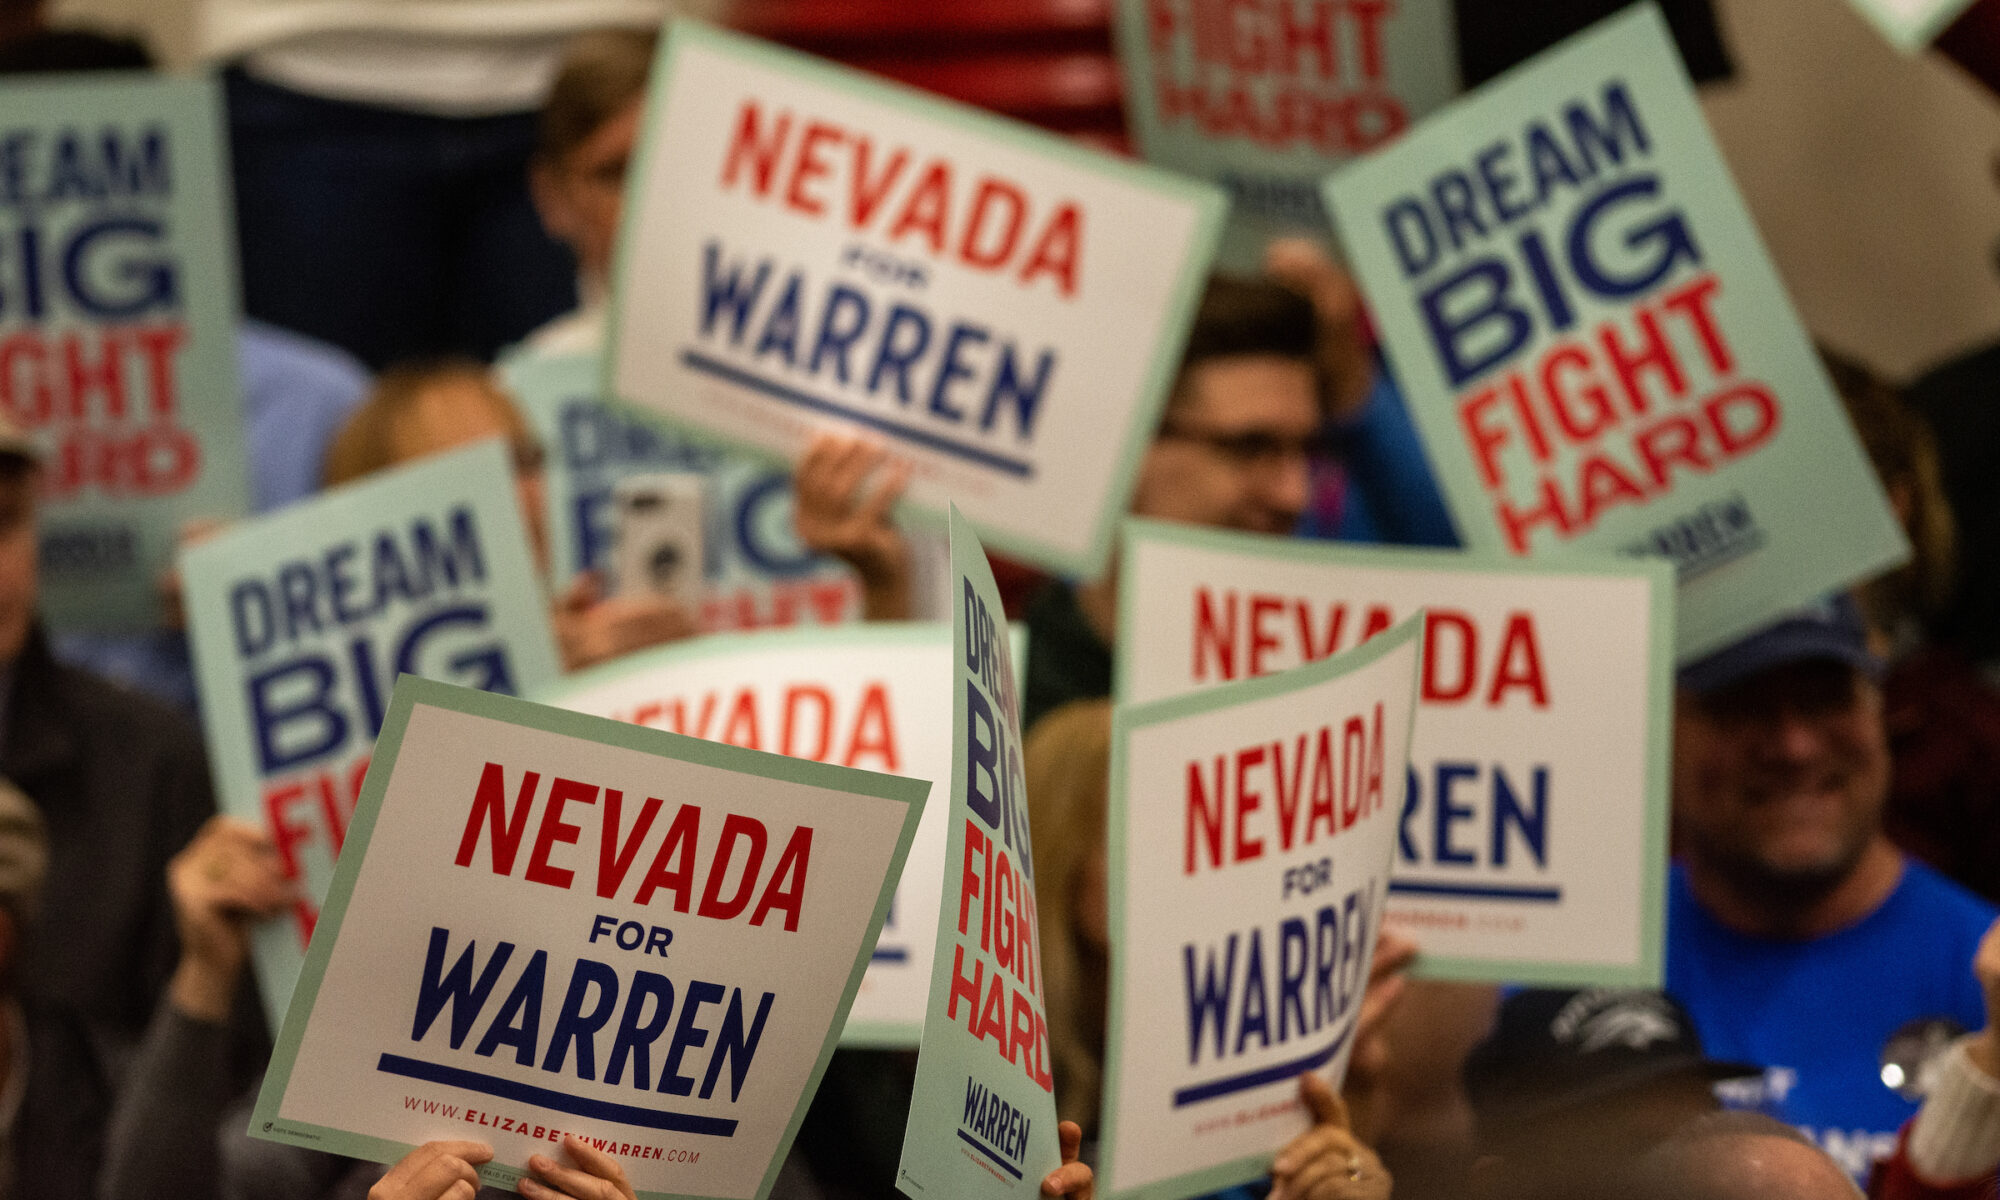 Signs being held up reading Nevada for Warren and Dream Big Fight Hard during a campaign rally